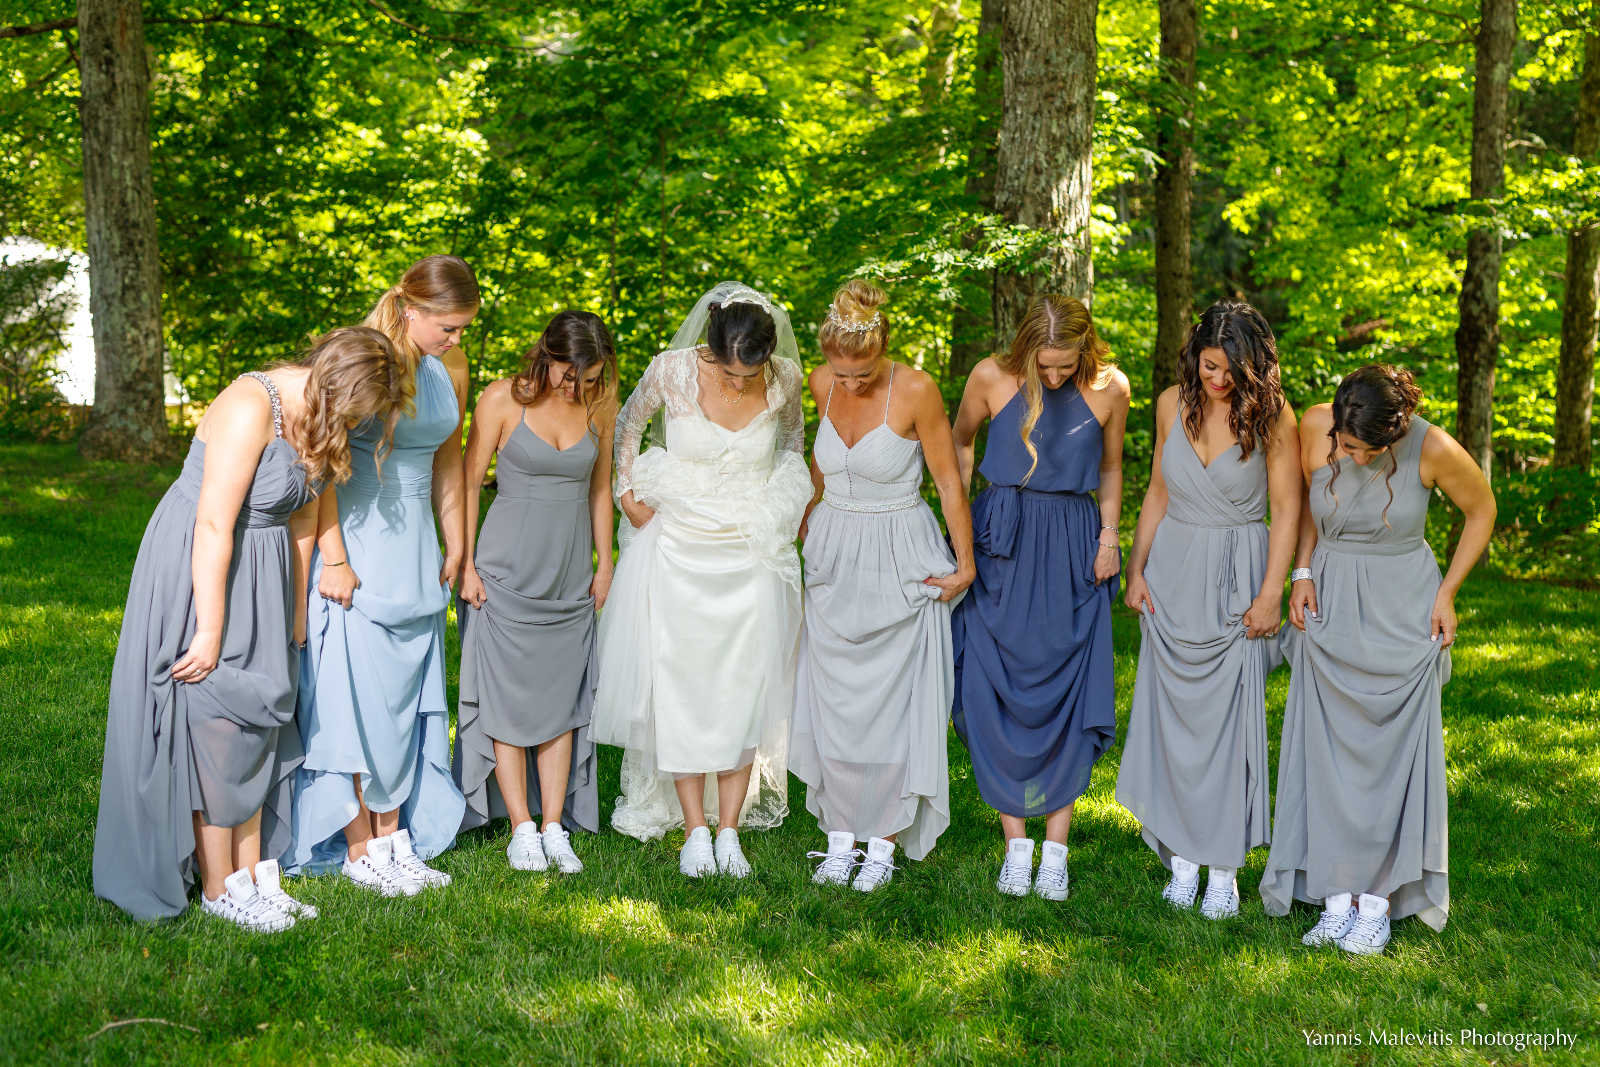 Yannis Malevitis image: Bridal party at Full Moon Resort